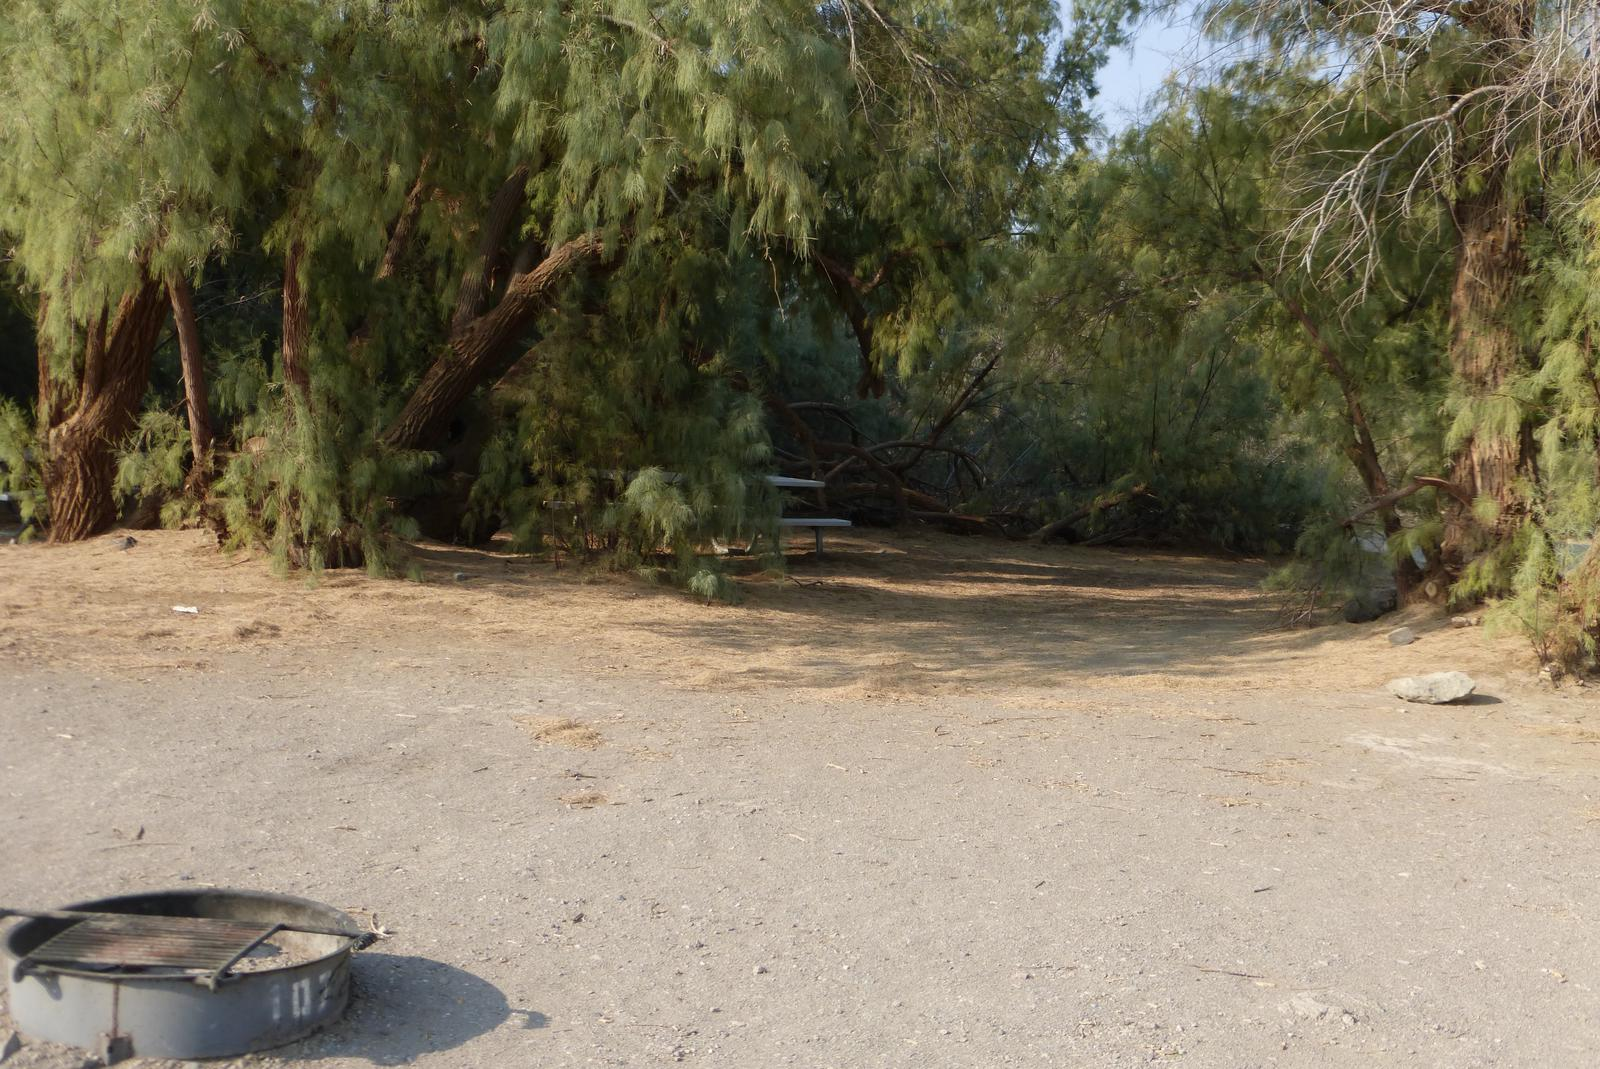 Furnace Creek Campground standard nonelectric tent only drive in site #107 with picnic table and fire ring.